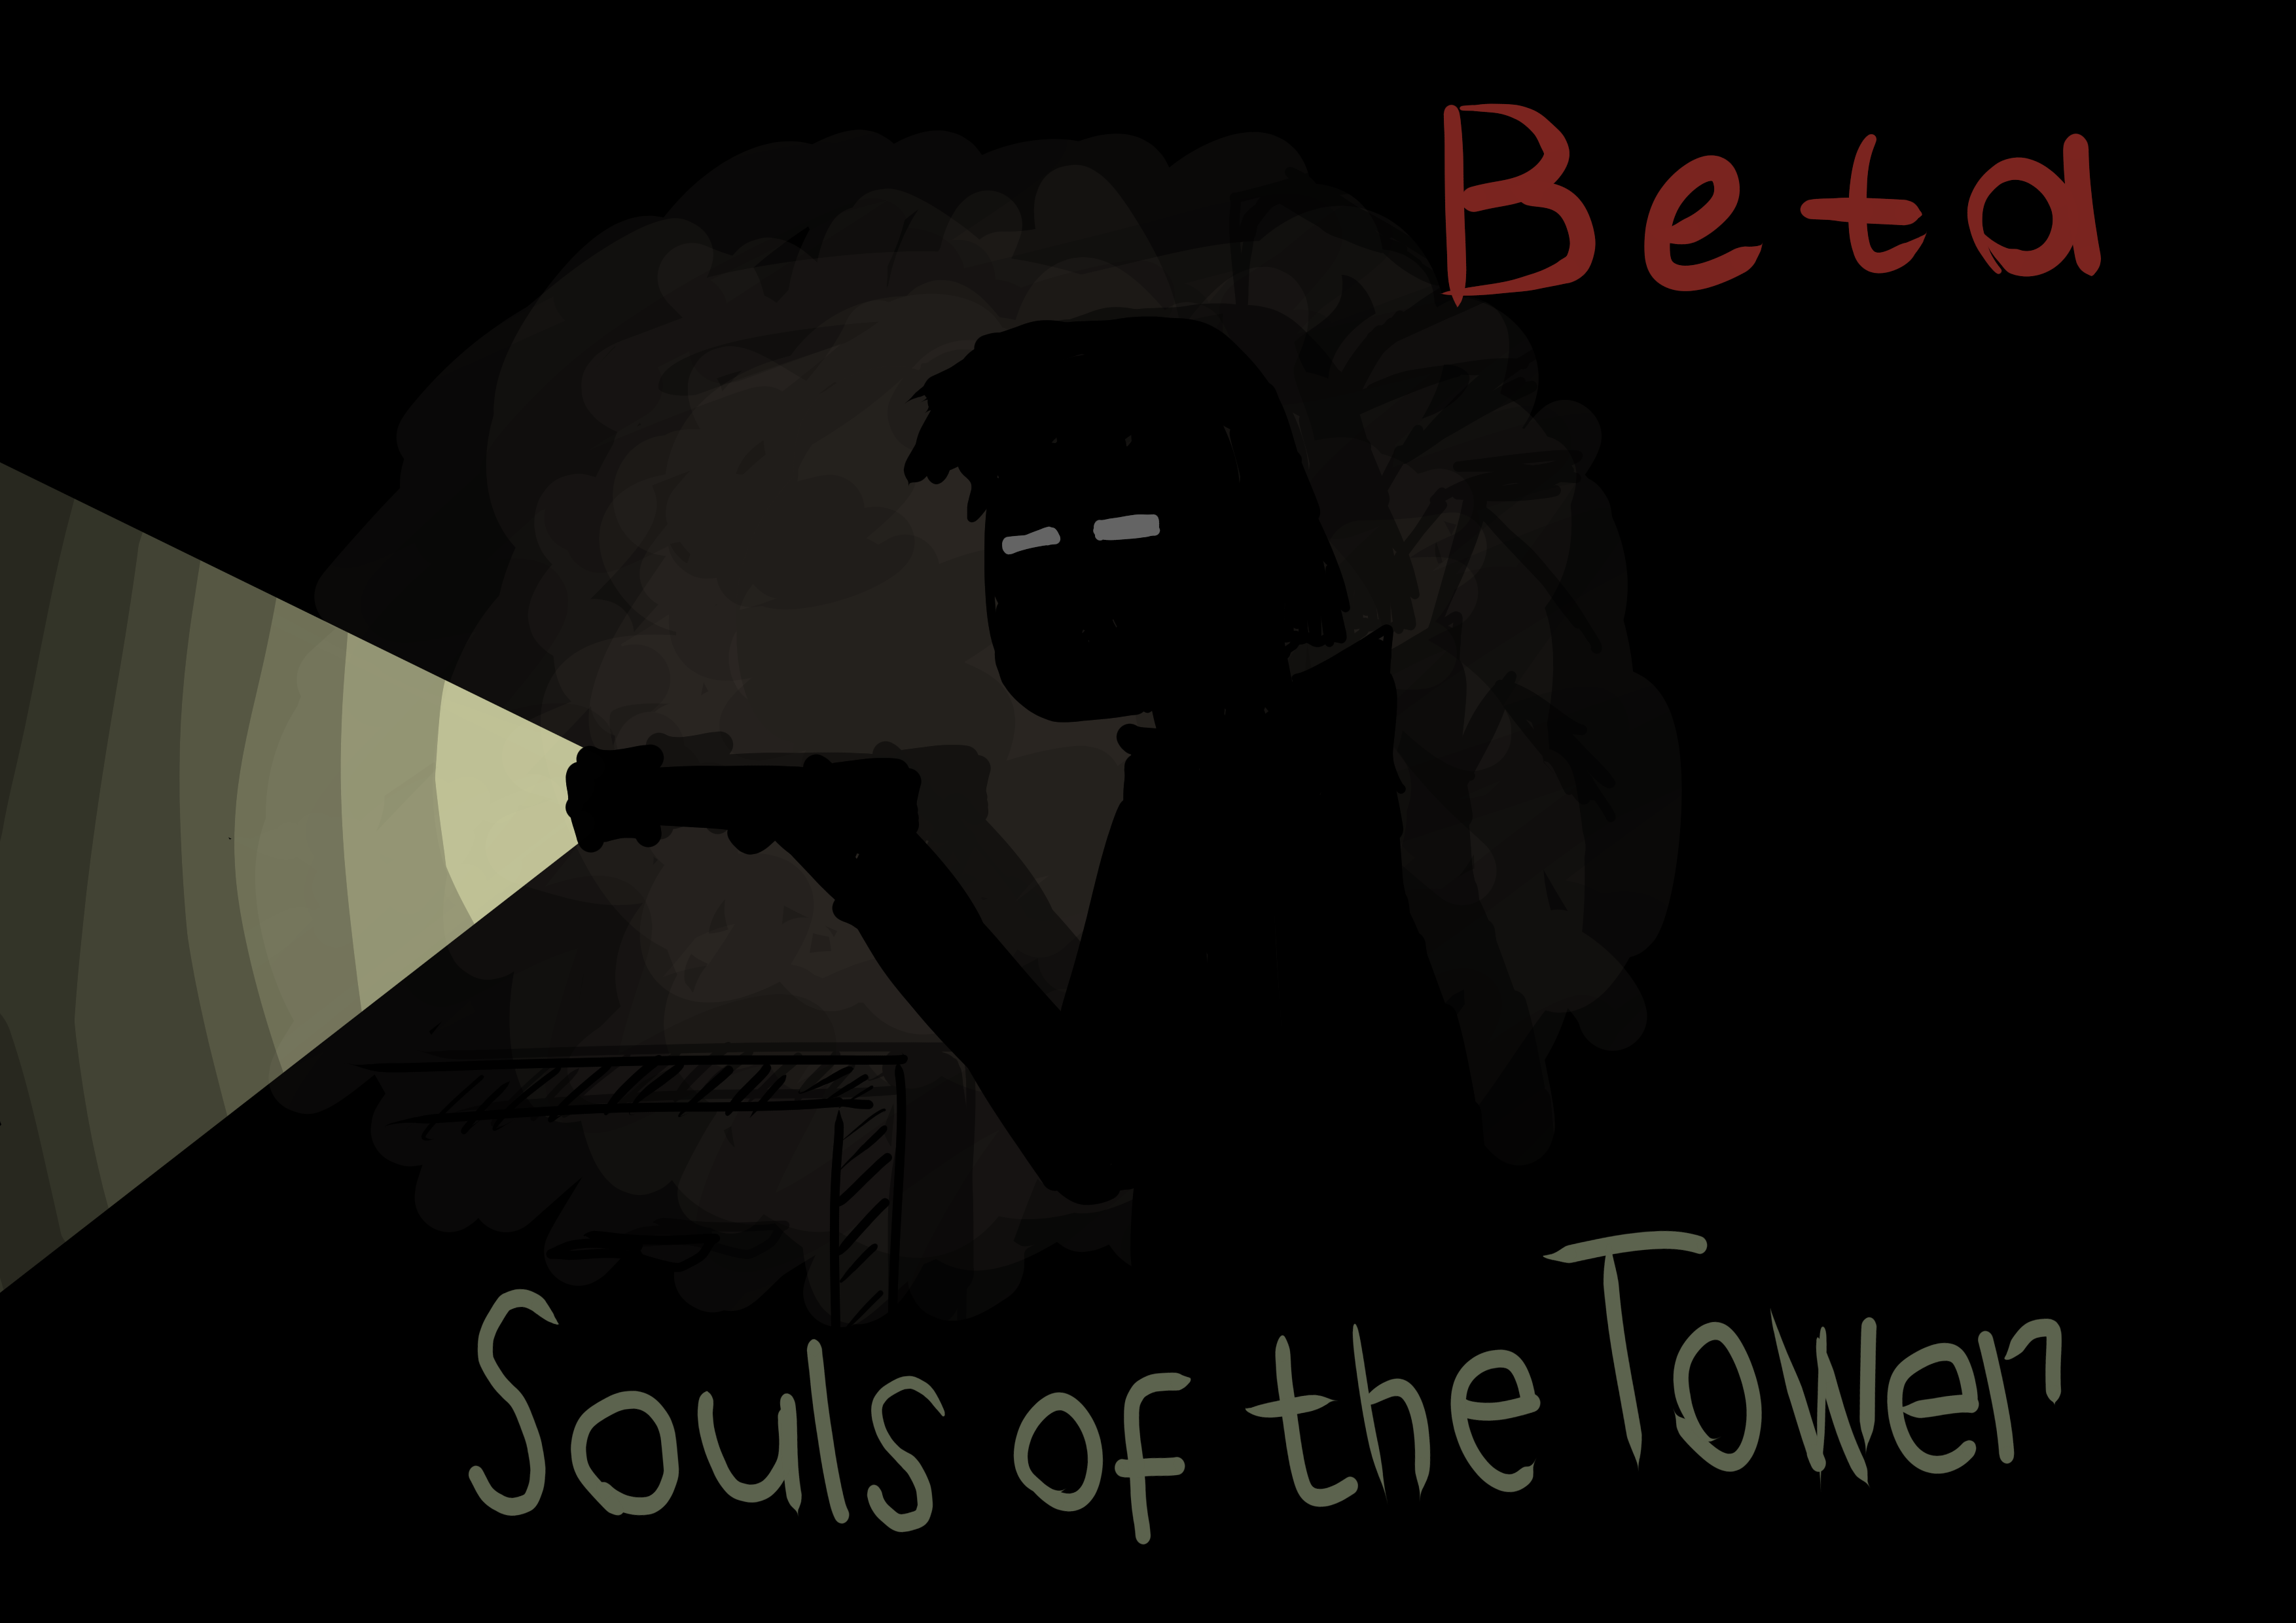 Souls Of The Tower b.15.1